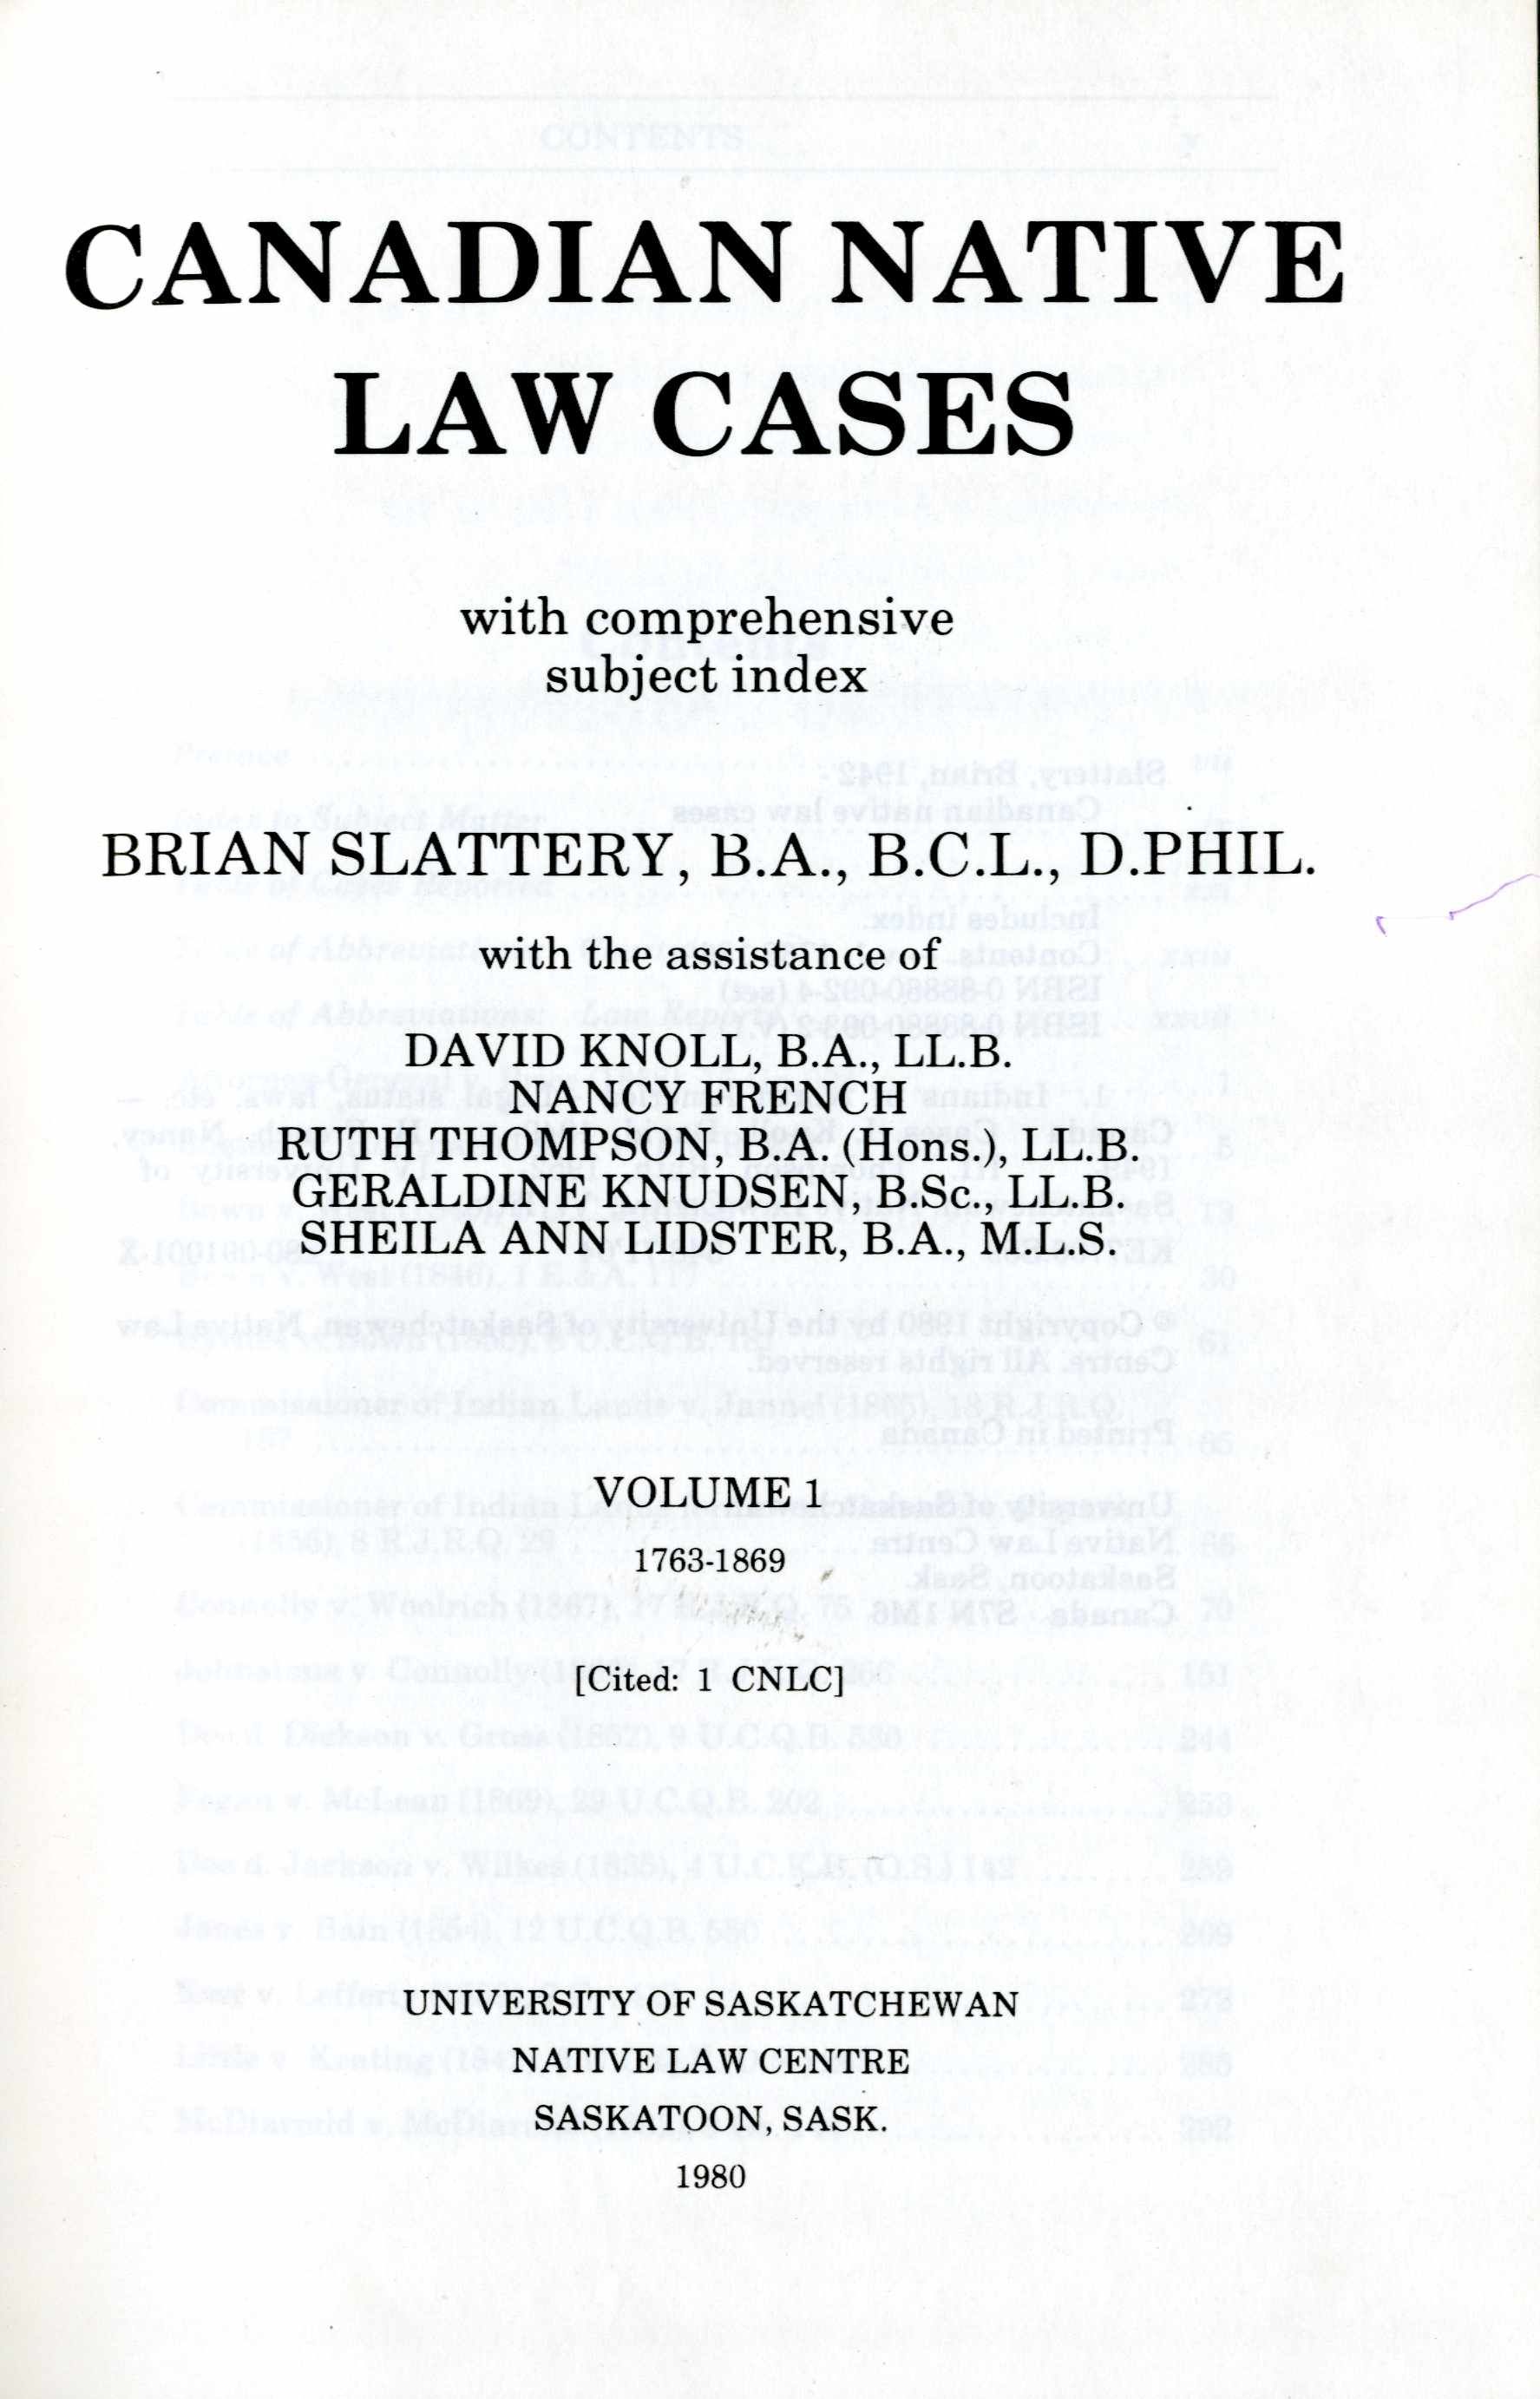 Canadian Native Law Cases Vol. 1 Image